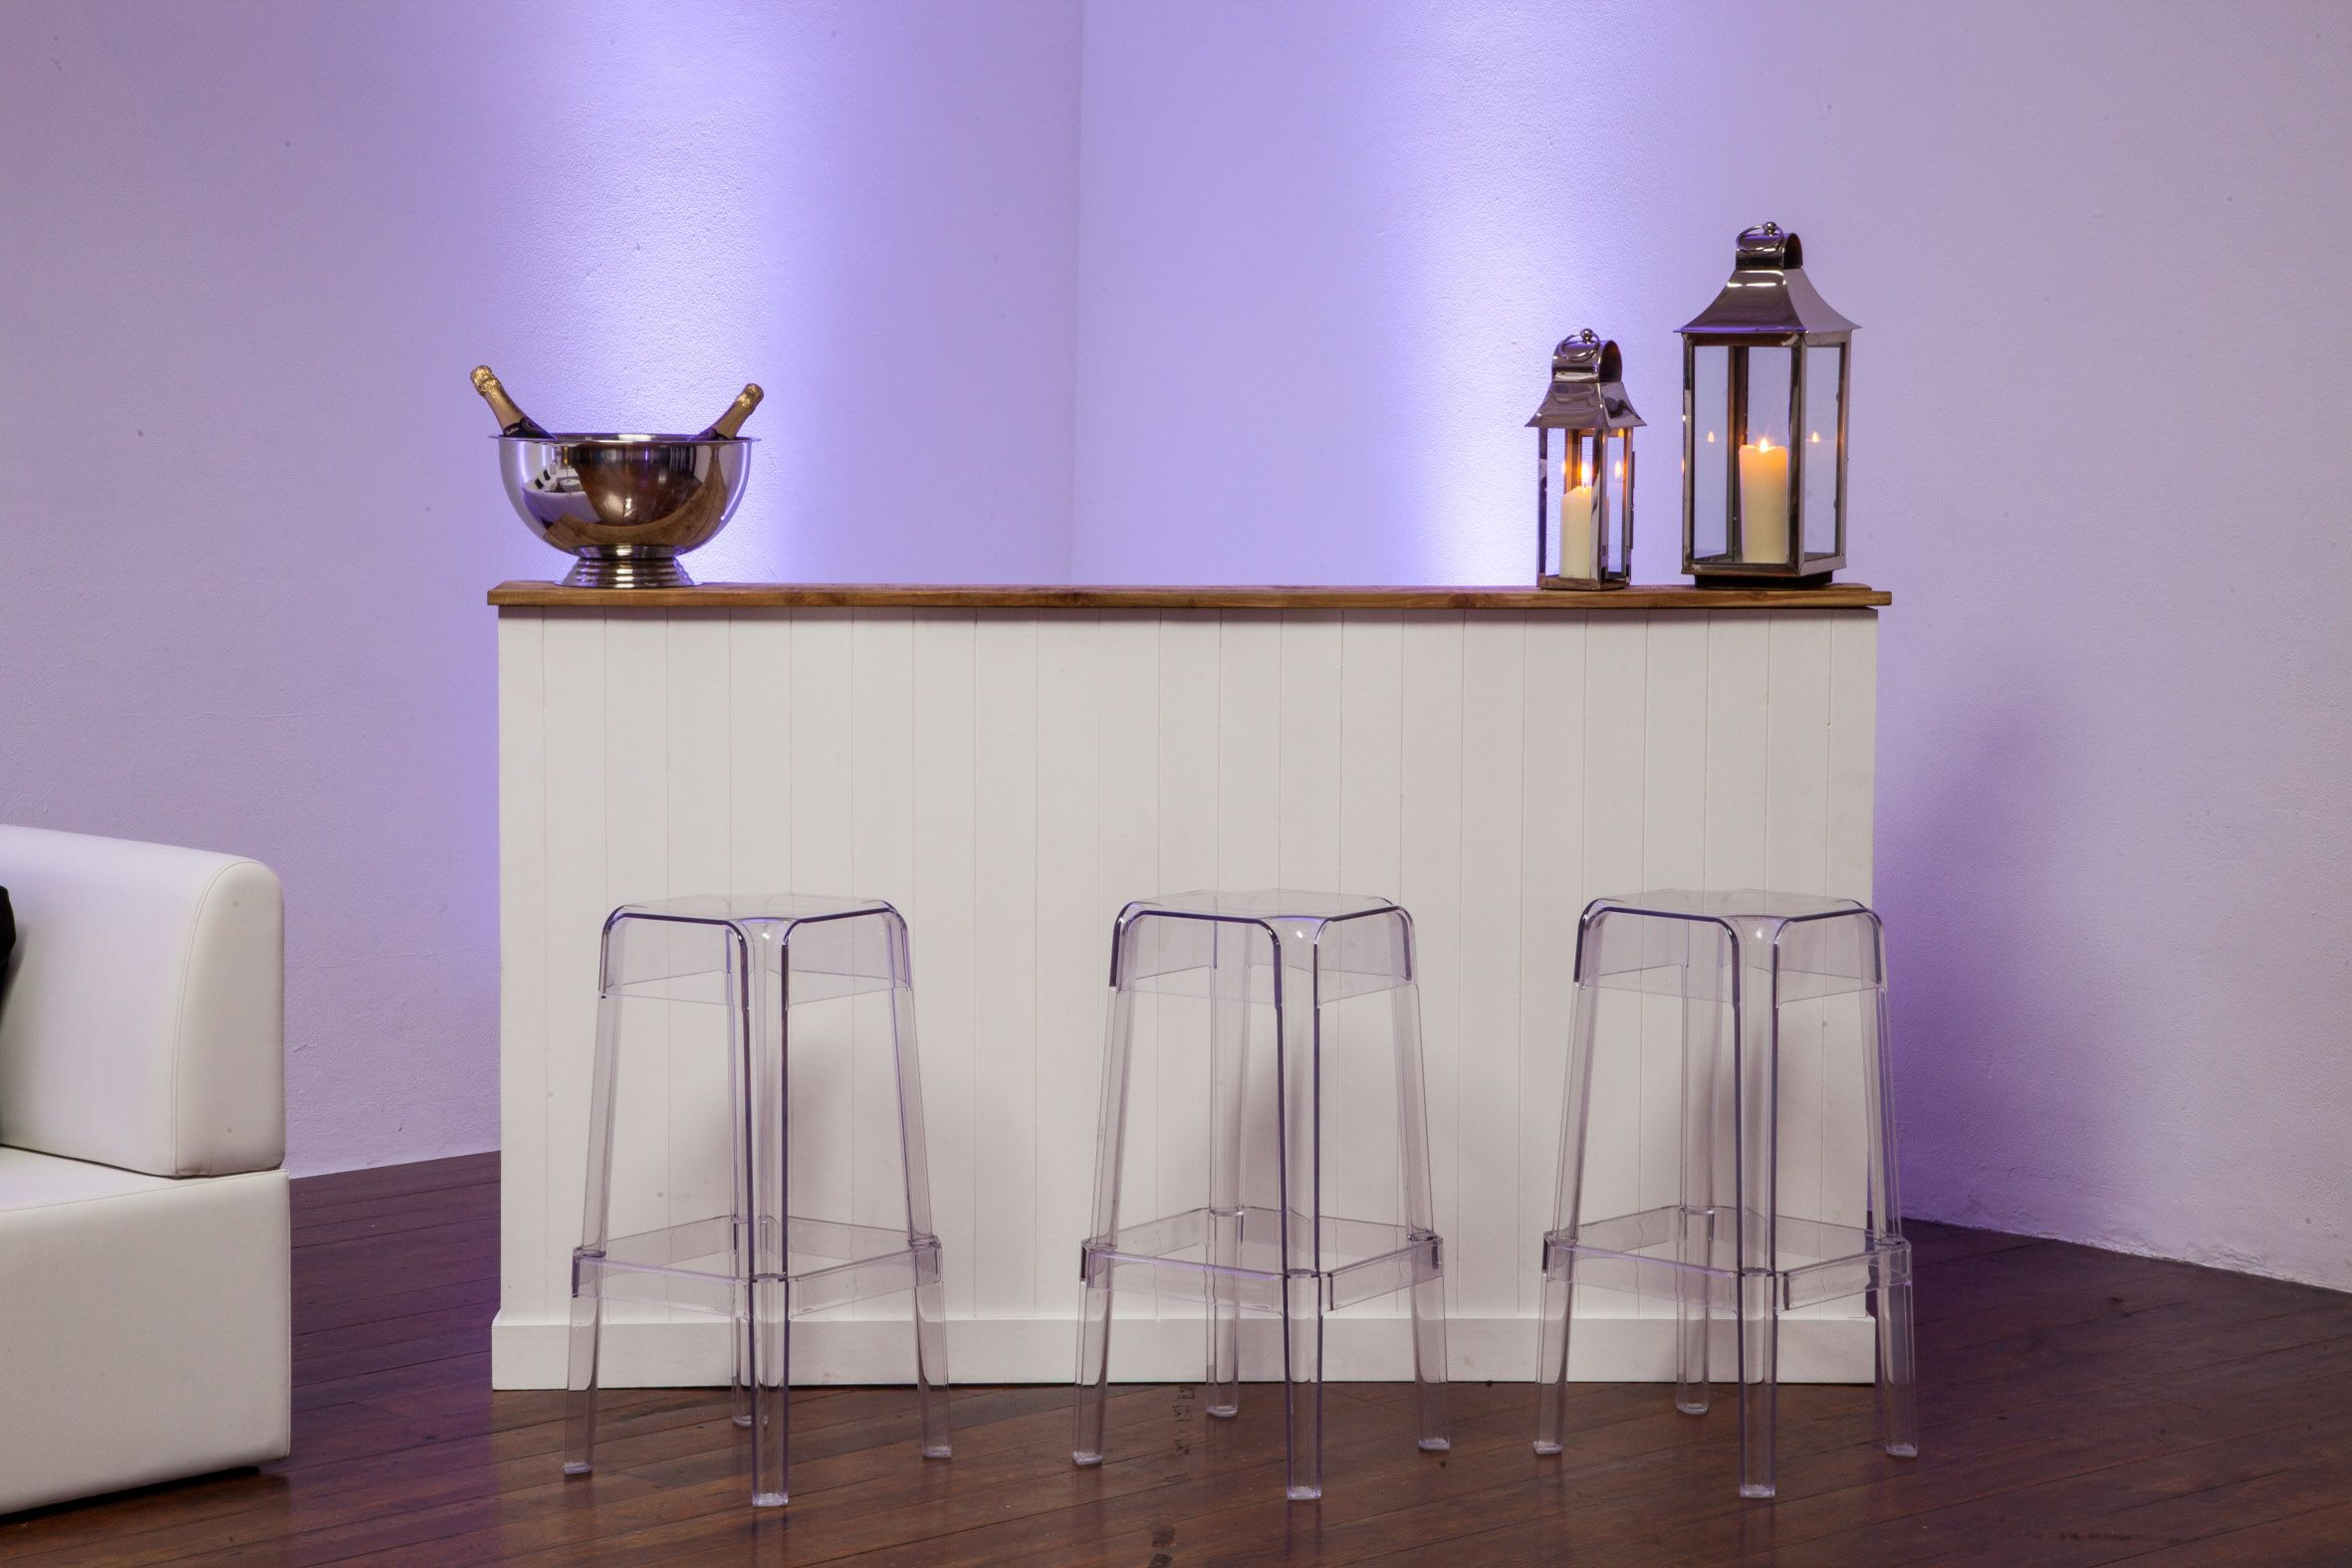 White tongue and groove rustic bar, clear Perspex stools, Champagne bowl, small and medium storm lanterns  #rusticfurniture #vintage #wedding #stormlanterns #interiordesign #warehousedesign #shoreditch #rusticwedding #outdoorfurniture #gardenparty #furniturehire